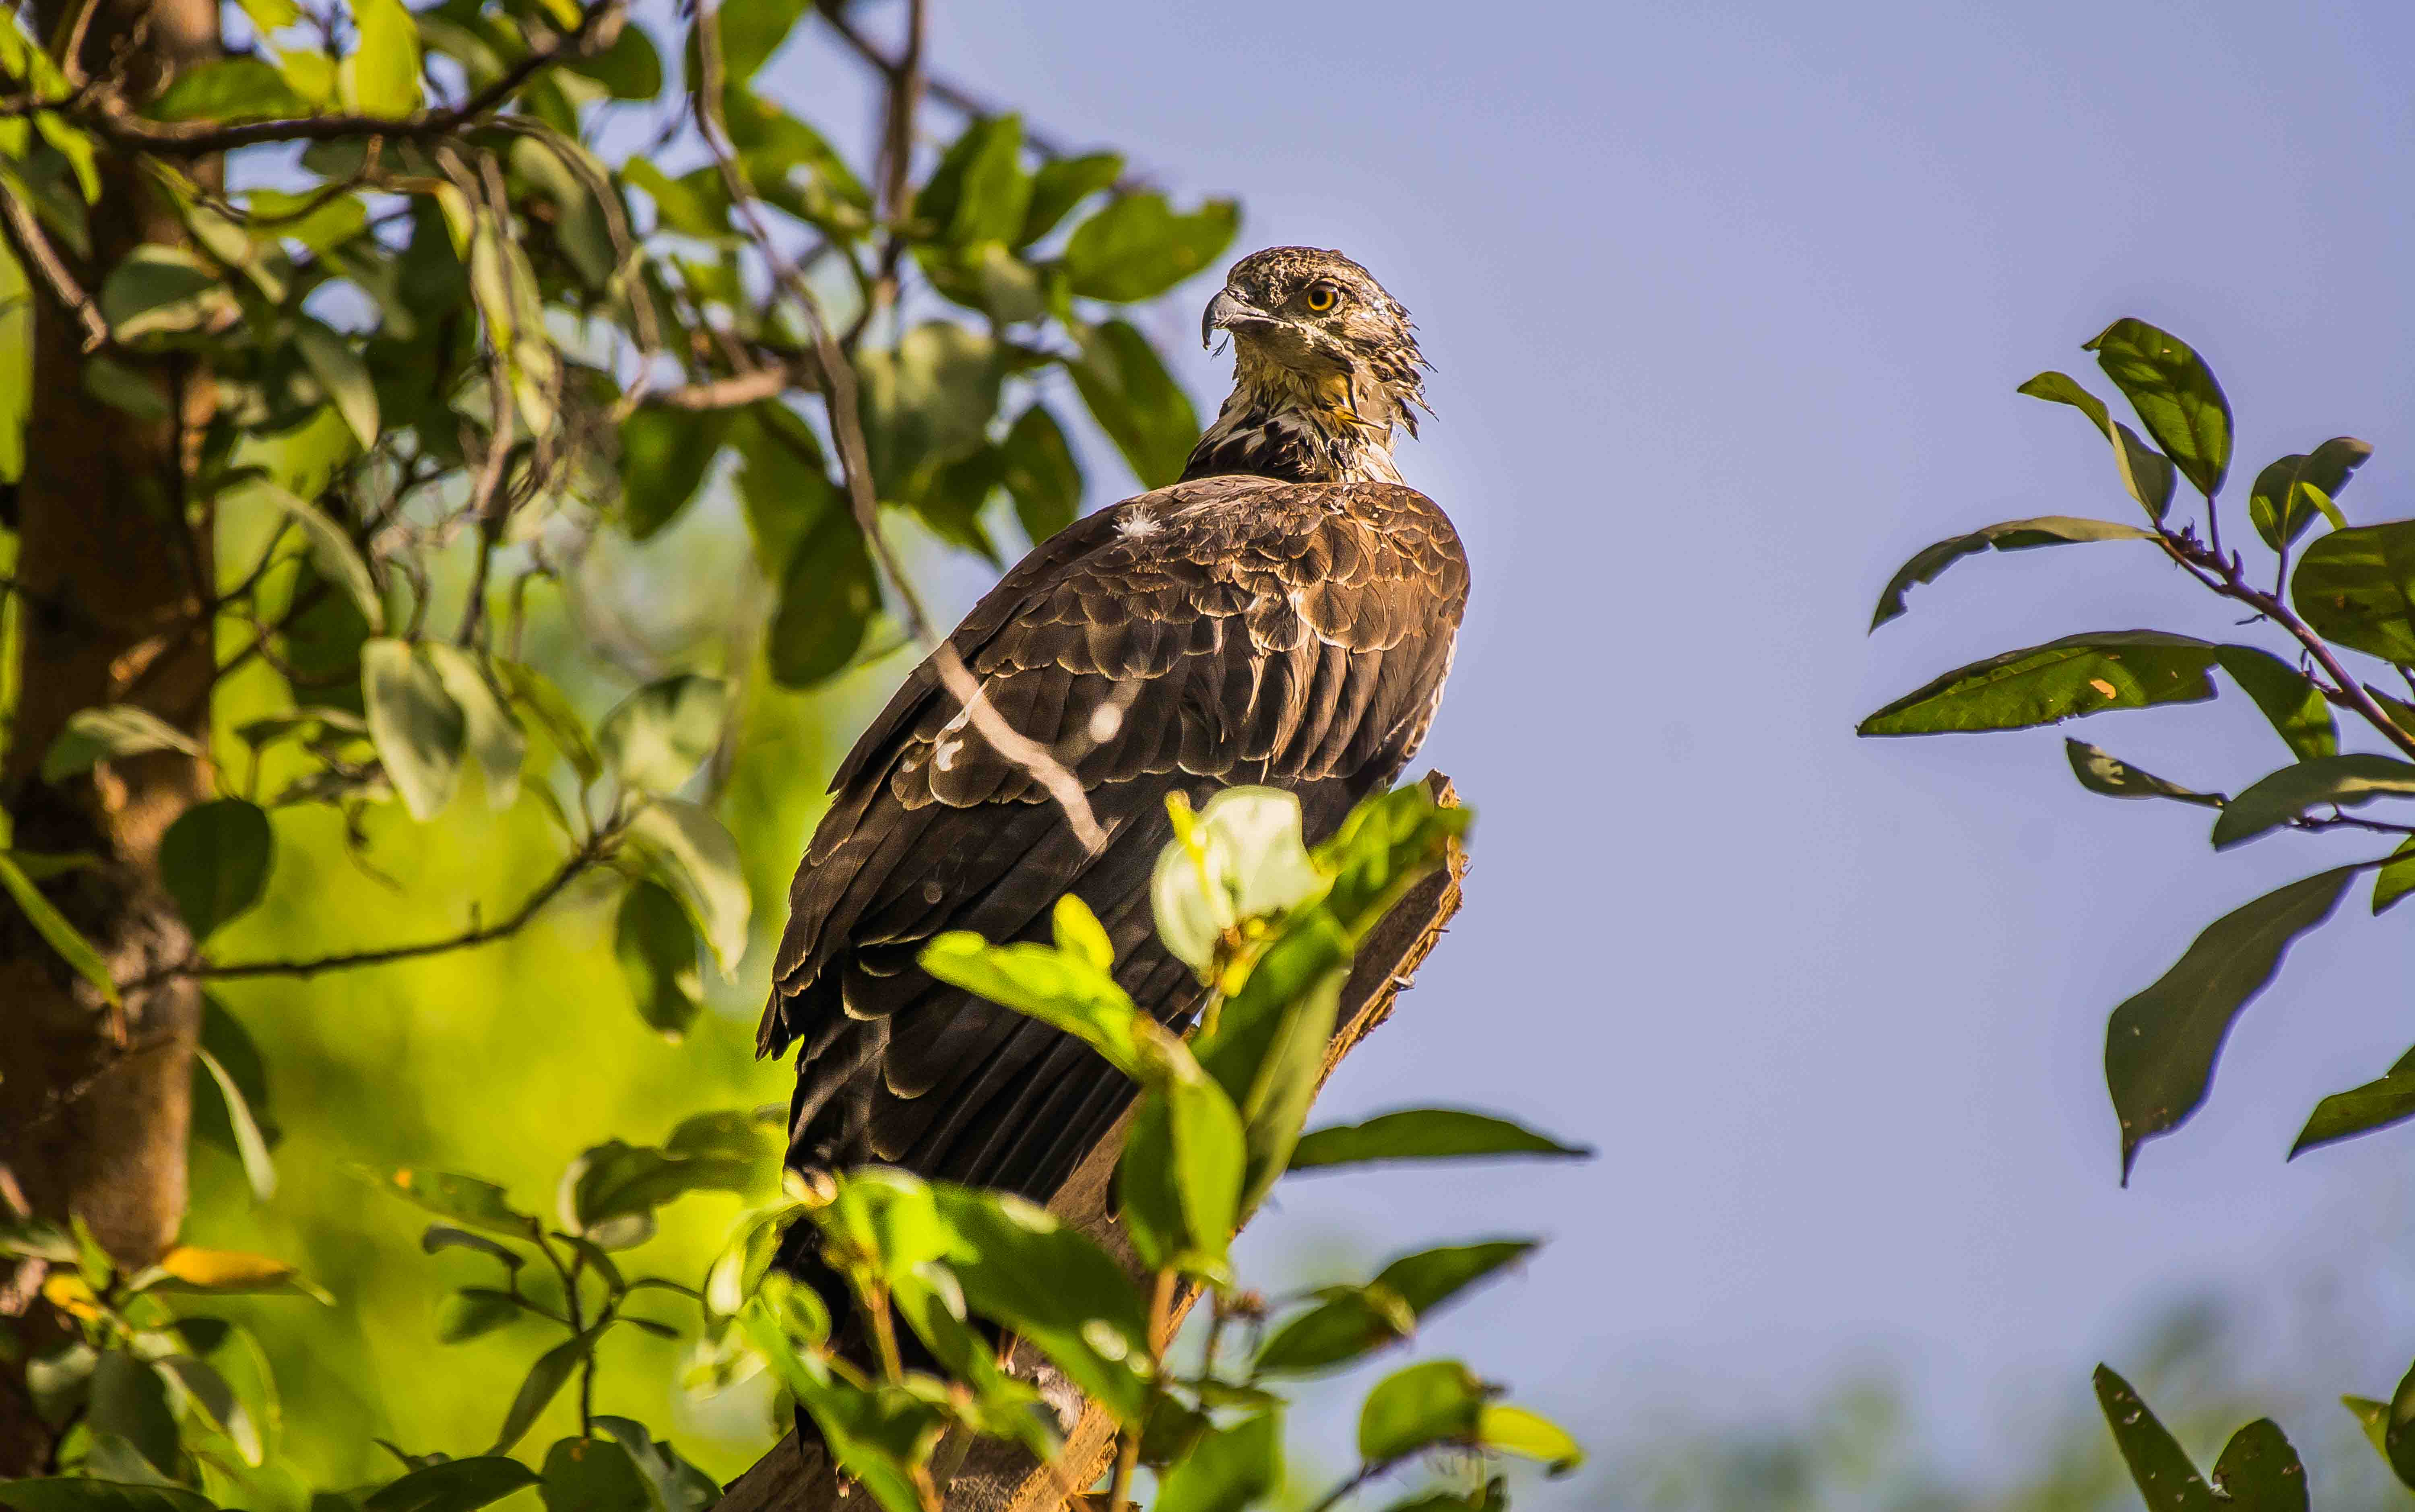 Juvenile and female oriental honey-buzzards have a brown head, while adult males are grey-headed.  Photo: Avinash Mishra -CC BY-SA 4.0  Cover Photo: A woodland inhabitant, the oriental honey-buzzard has dense, short, scale-like feathers on its lores (the area between the eyes and base of its bill). These feathers offer it protection from stings of its primary prey — bees and wasps.  Cover photo: Koshy Koshy – CC BY 2.0